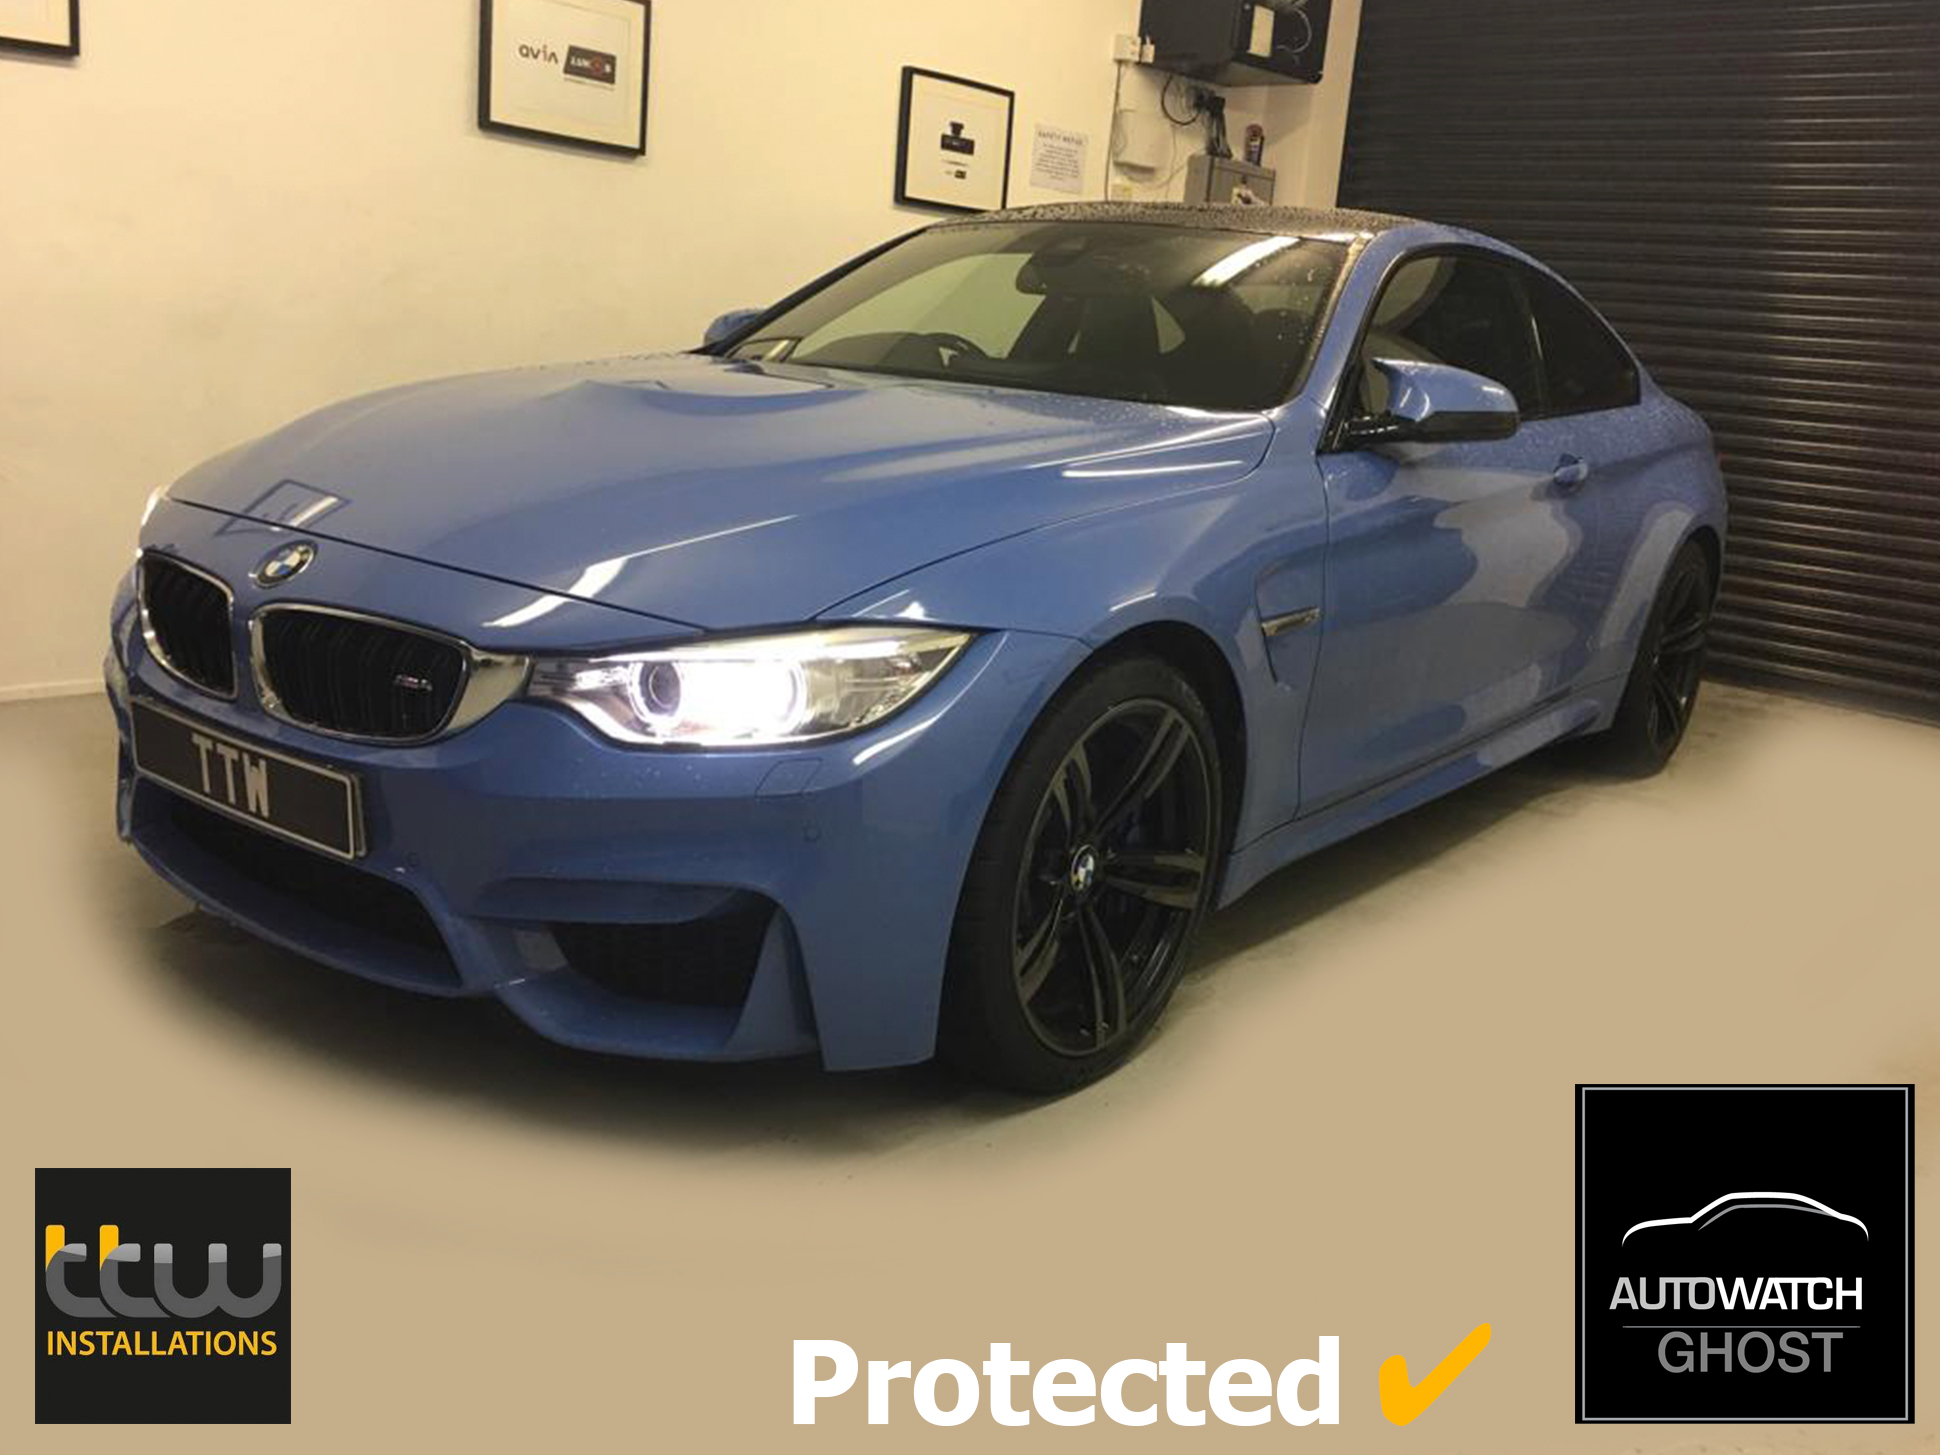 BMW M4 Autowatch Ghost 2 protected By TTW Installations